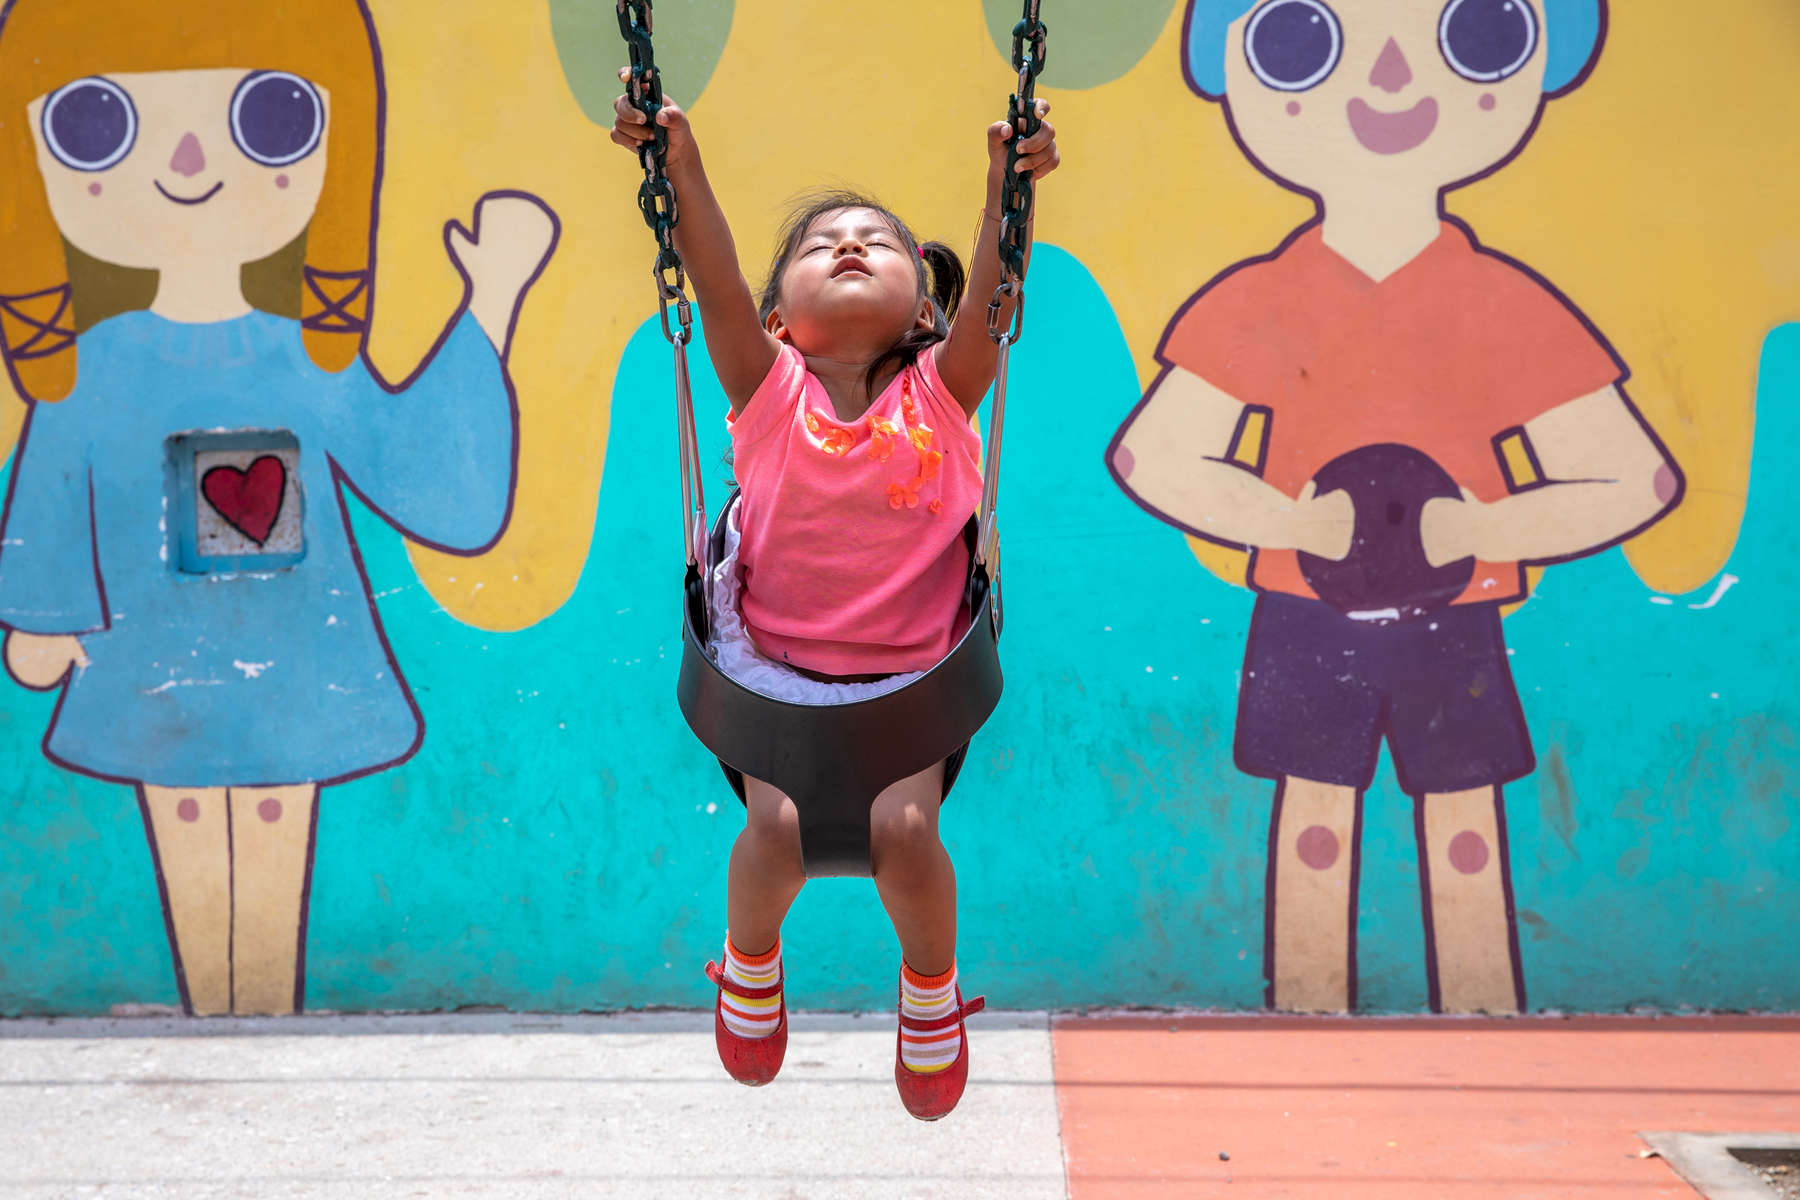 Sofia, 2, plays on a swing in a park Mercy Corps built in her community. These infrastructure projects — playgrounds, exercise areas, community centers — are part of Mercy Corps' CONVIVIMOS program, which is working in Guatemala City's most violent areas to promote cohesion and help people reclaim their communities. The spaces offer families important neutral territory in places otherwise driven by territory-based gang violence, and offer them the opportunity to experience and feel rooted in their communities in a more positive way.